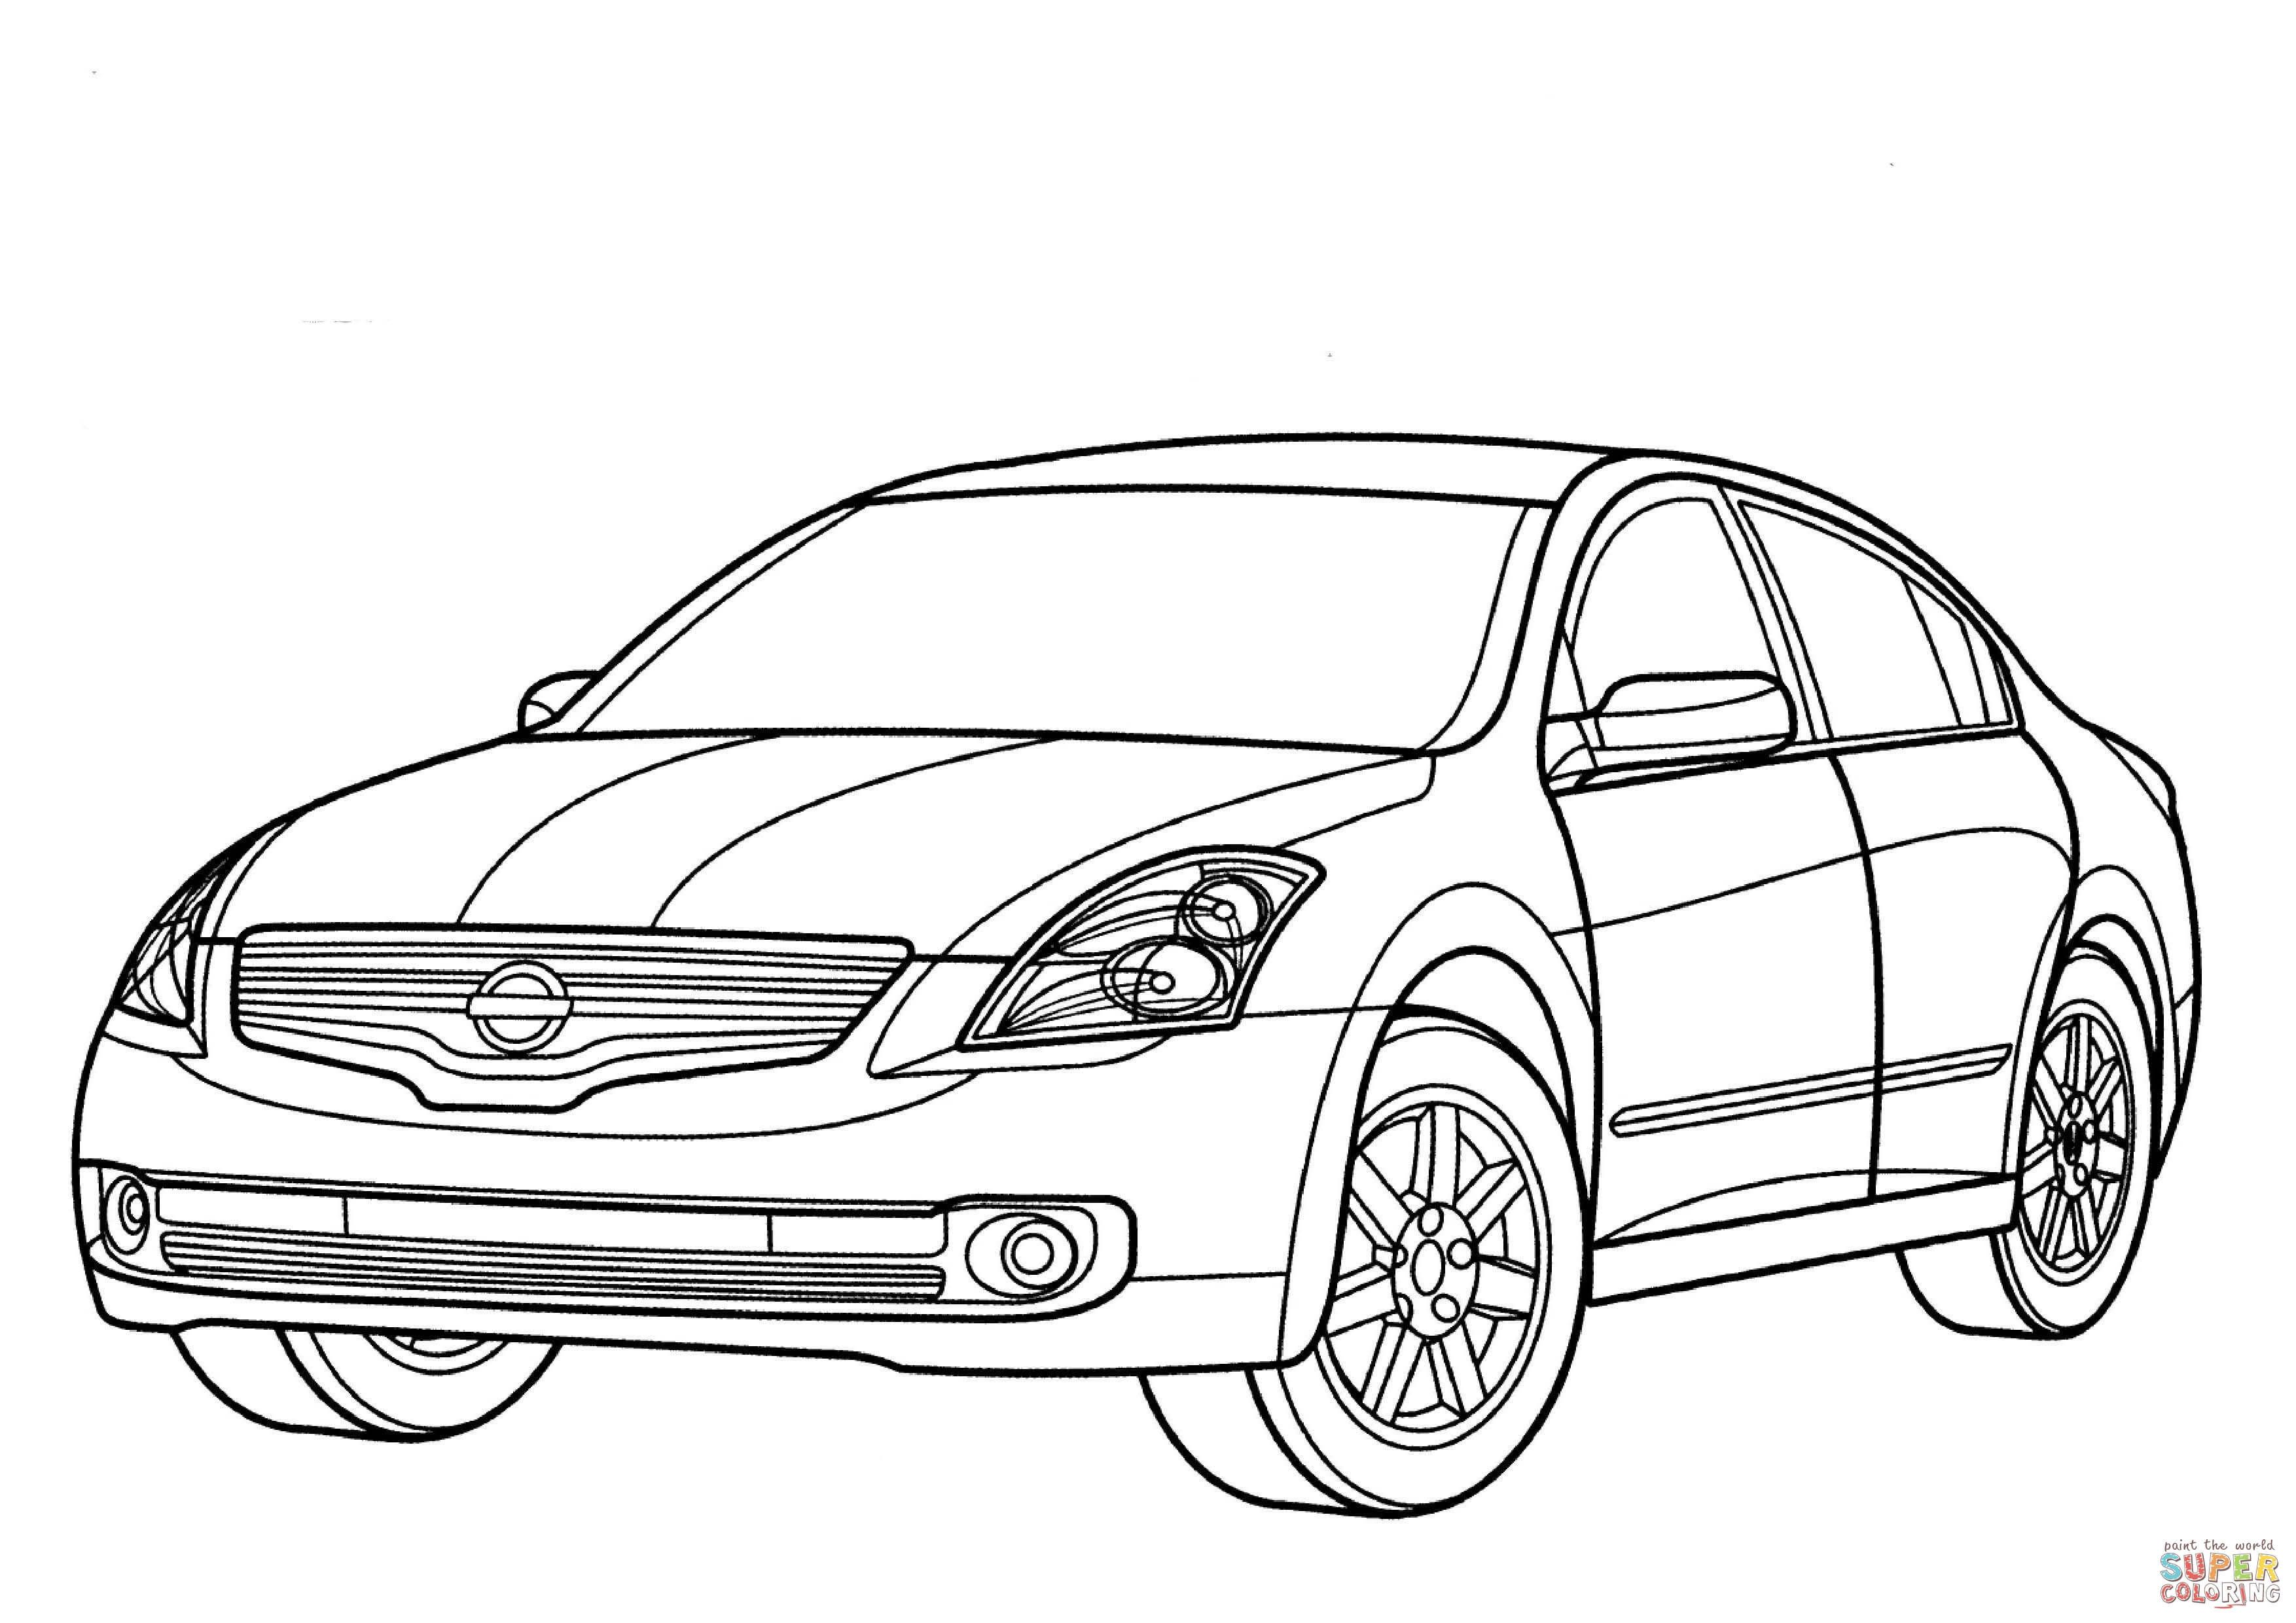 Cars Ausmalbilder Lightning Mcqueen : Nissan Altima Hybrid Coloring Page Free Printable Coloring_pages